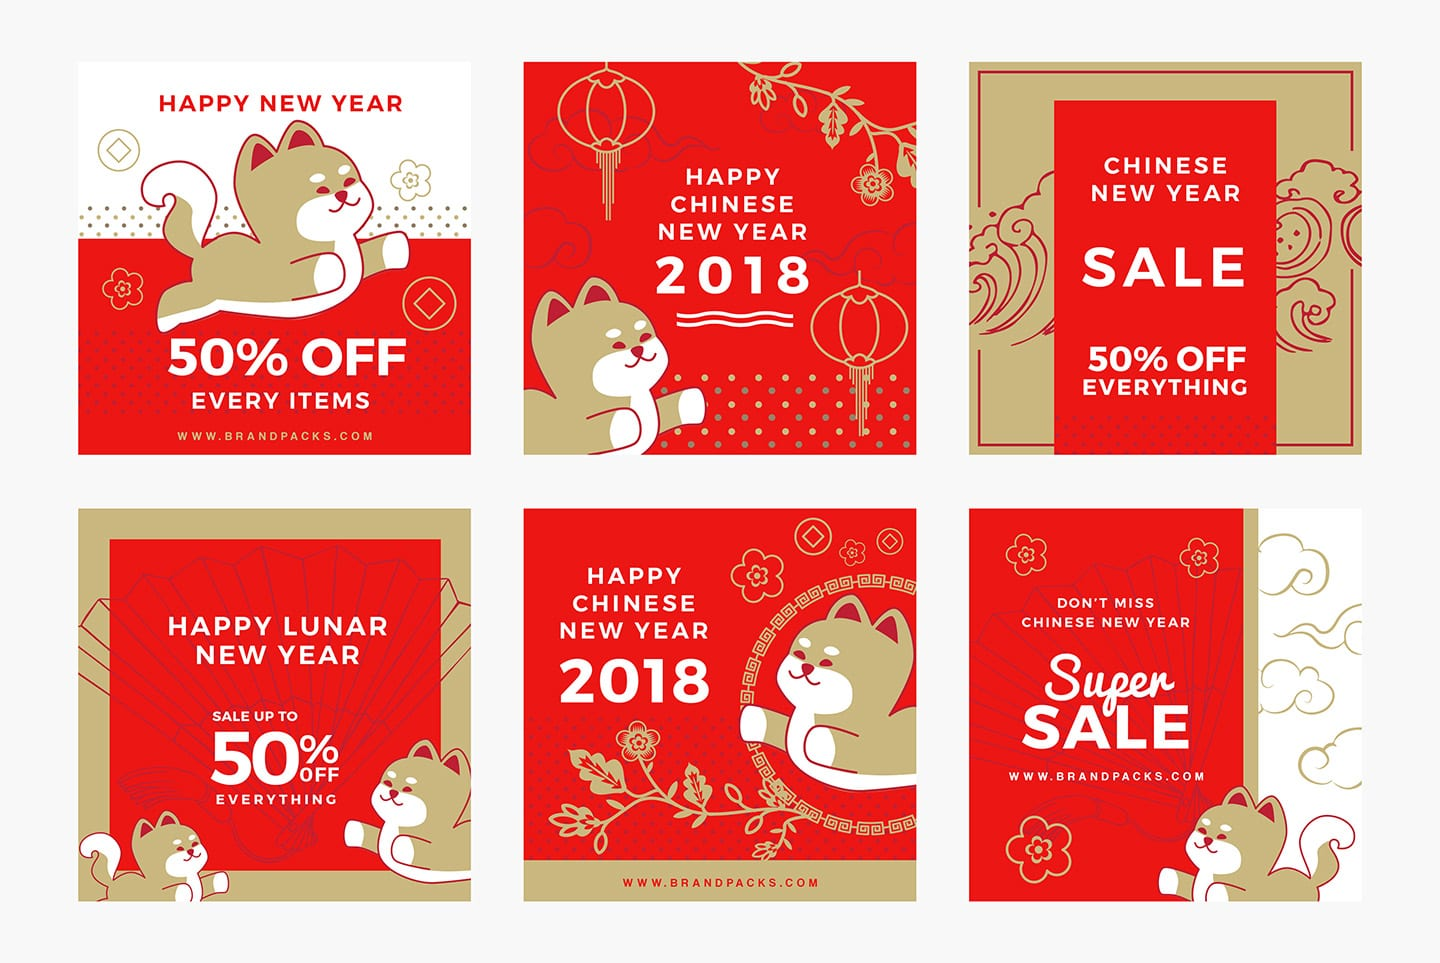 Chinese New Year Instagram Templates